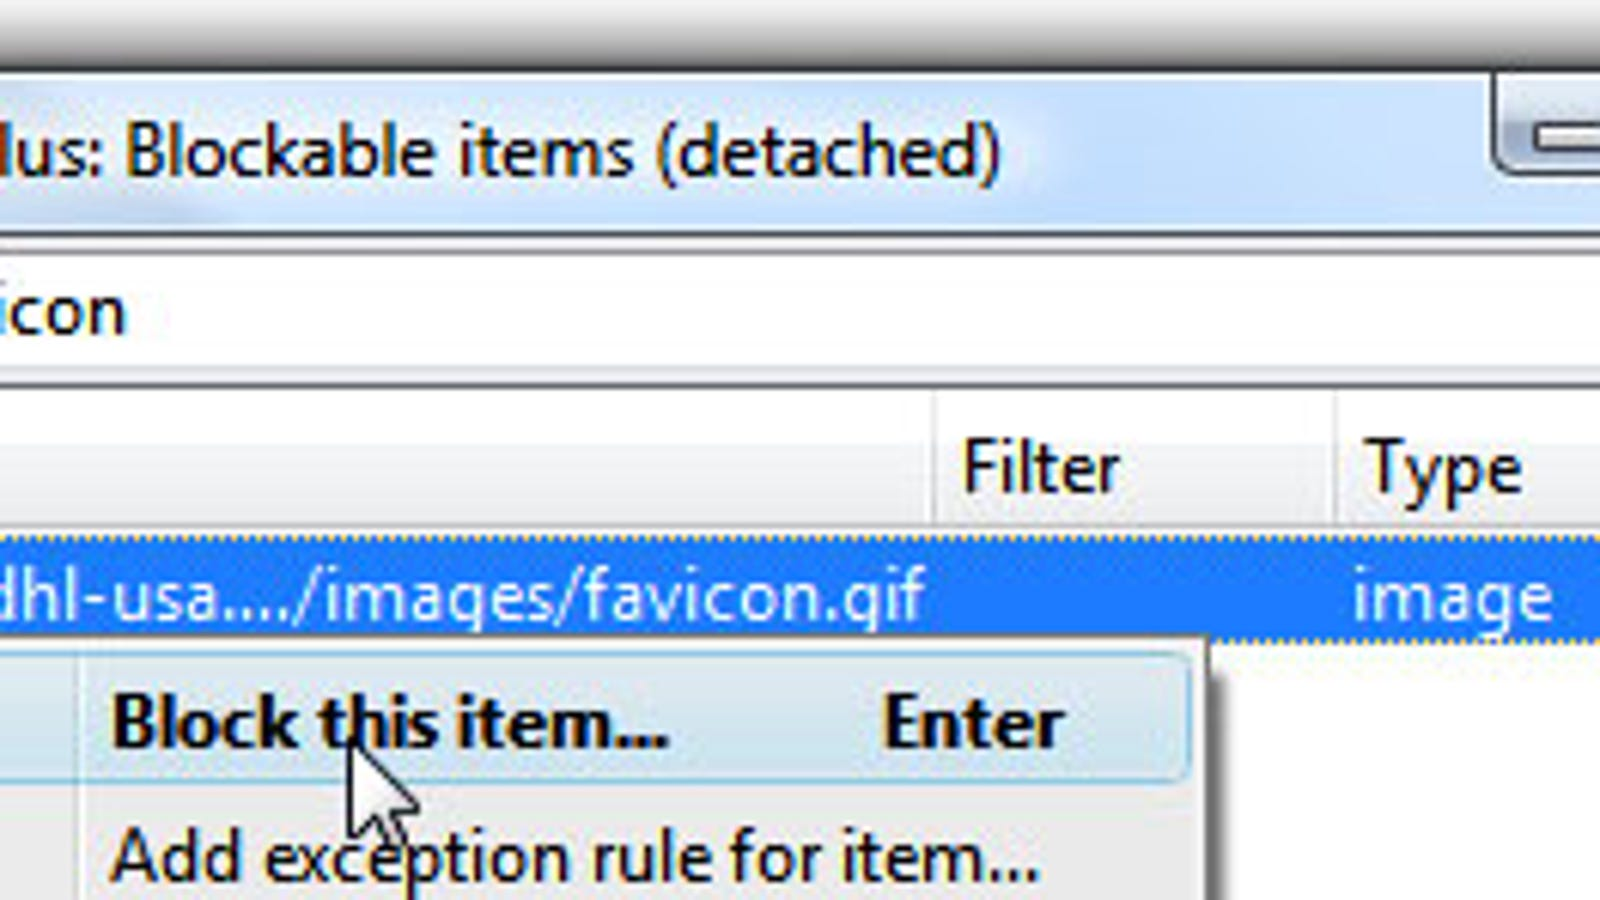 How to Block Distracting Animated Favicons